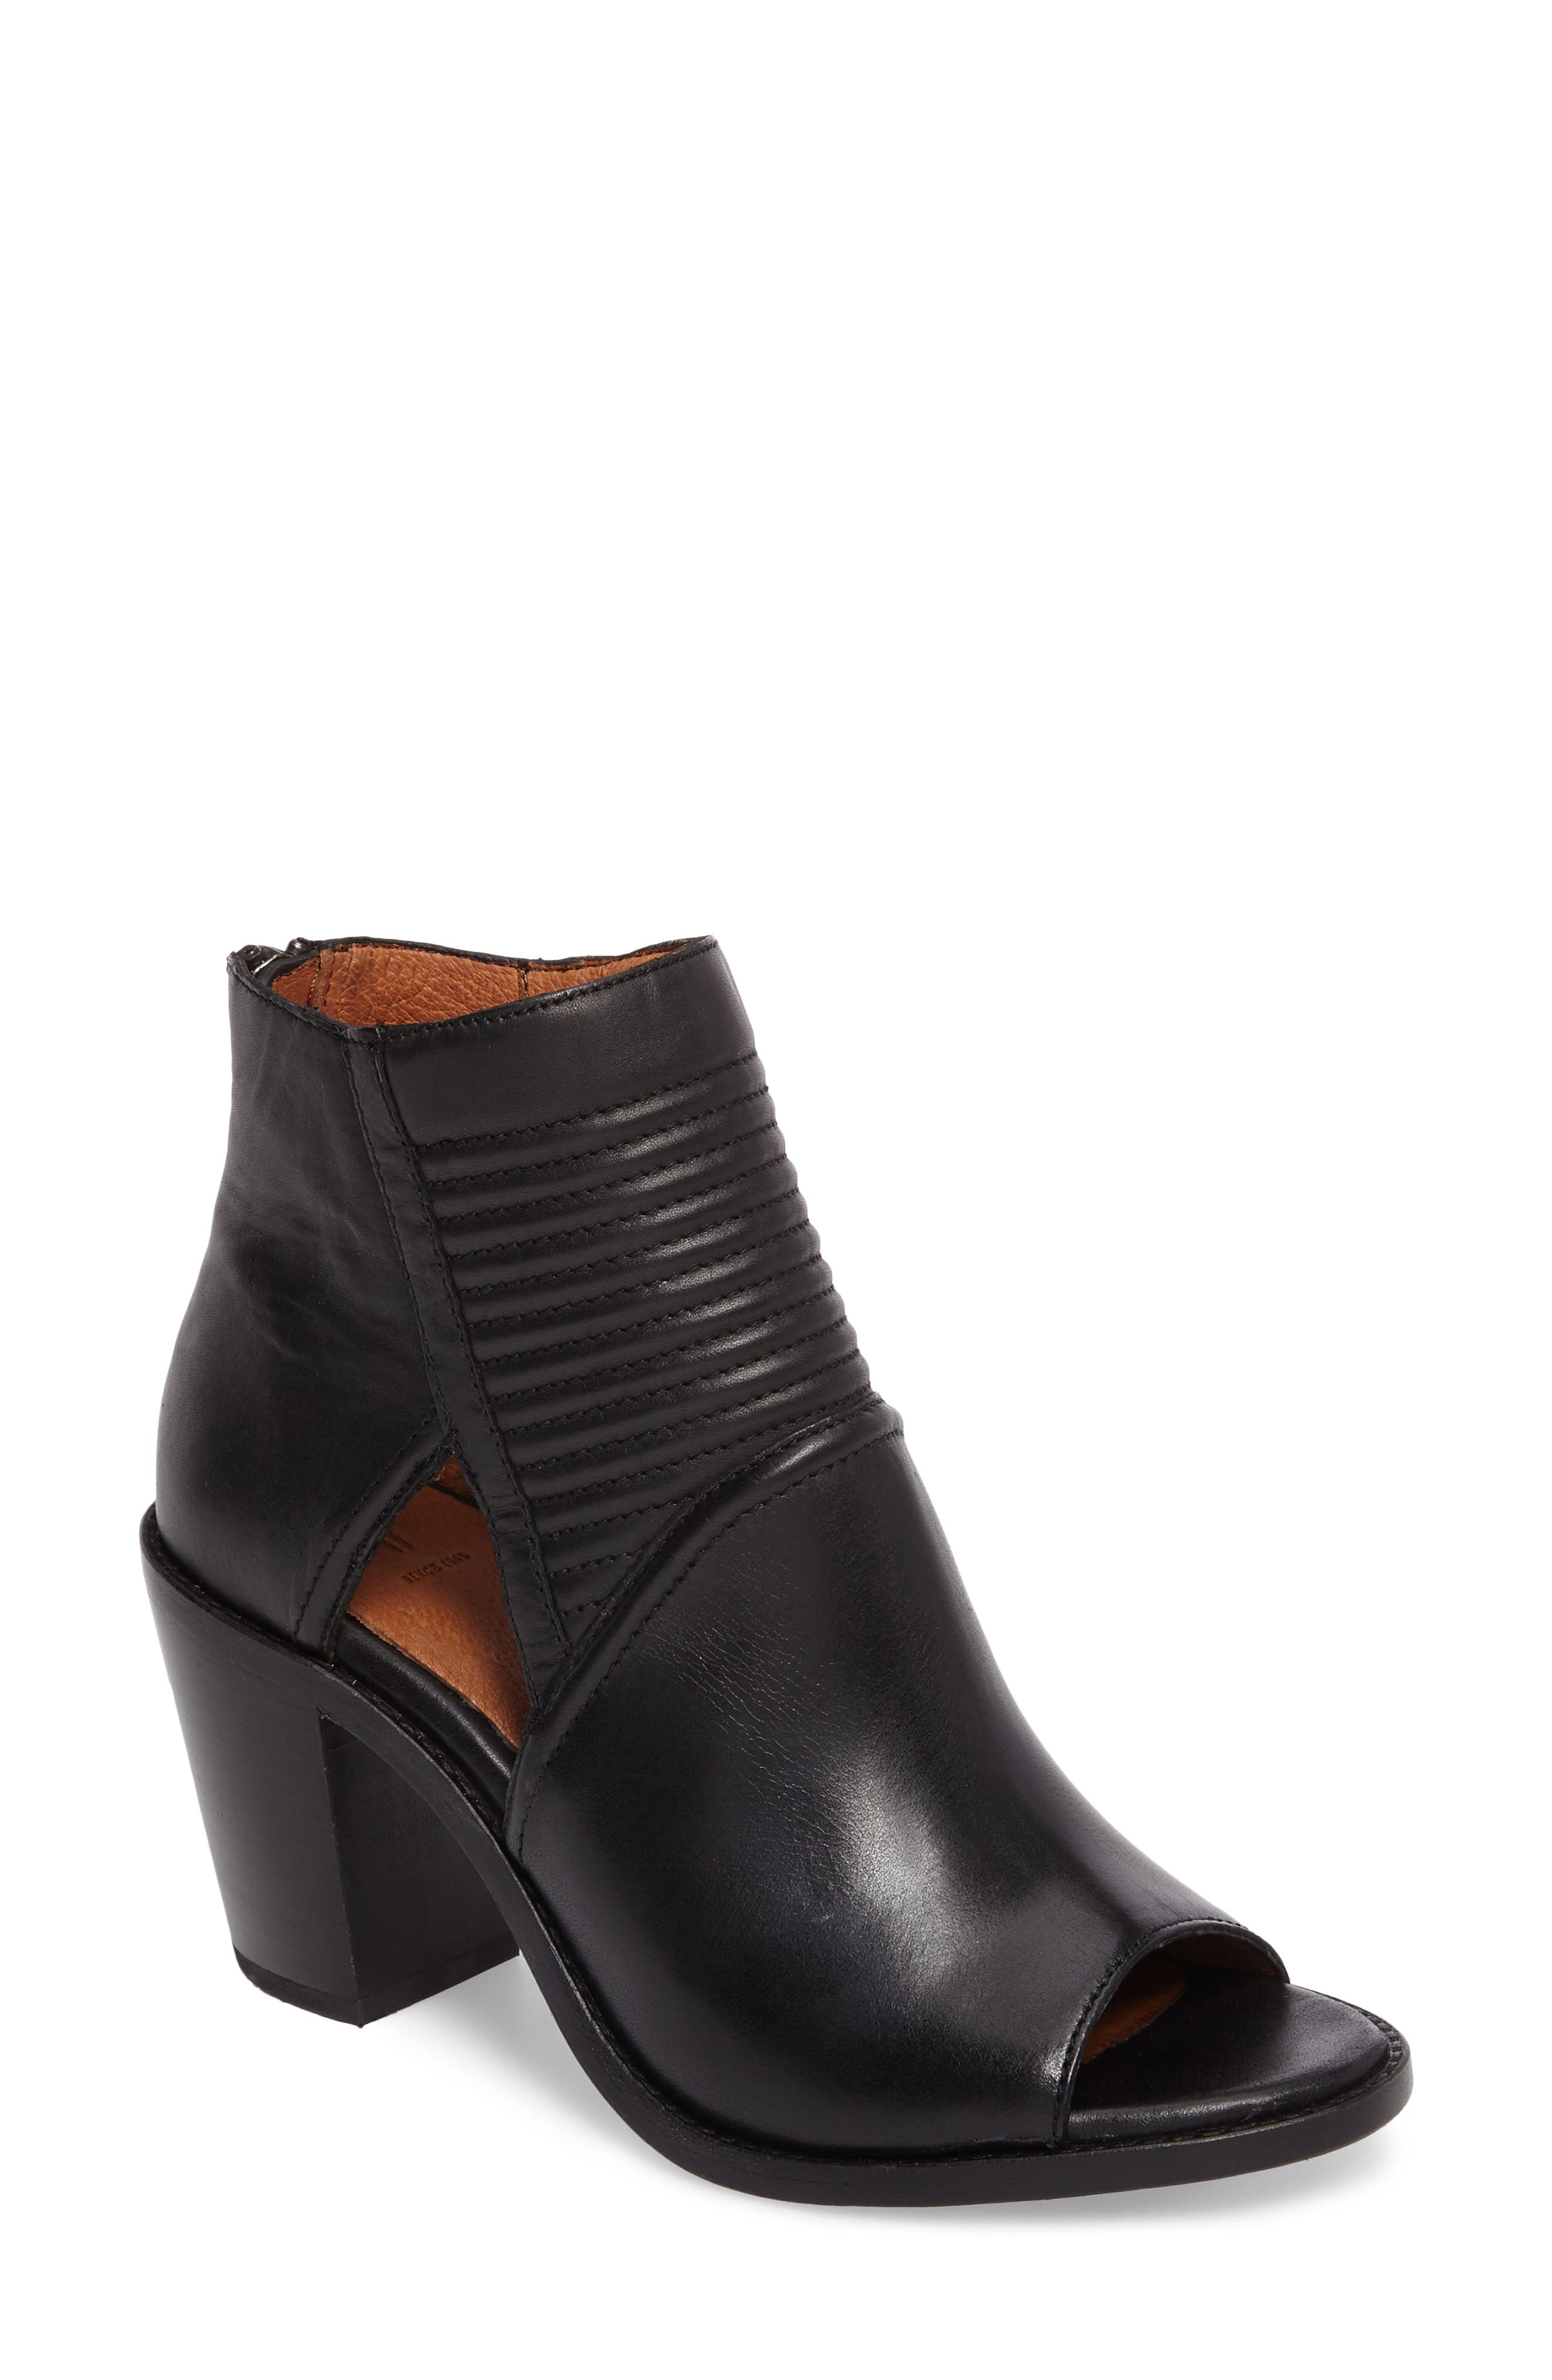 Alternate Image 1 Selected - Frye Bailey Quilted Peep Toe Bootie (Women)